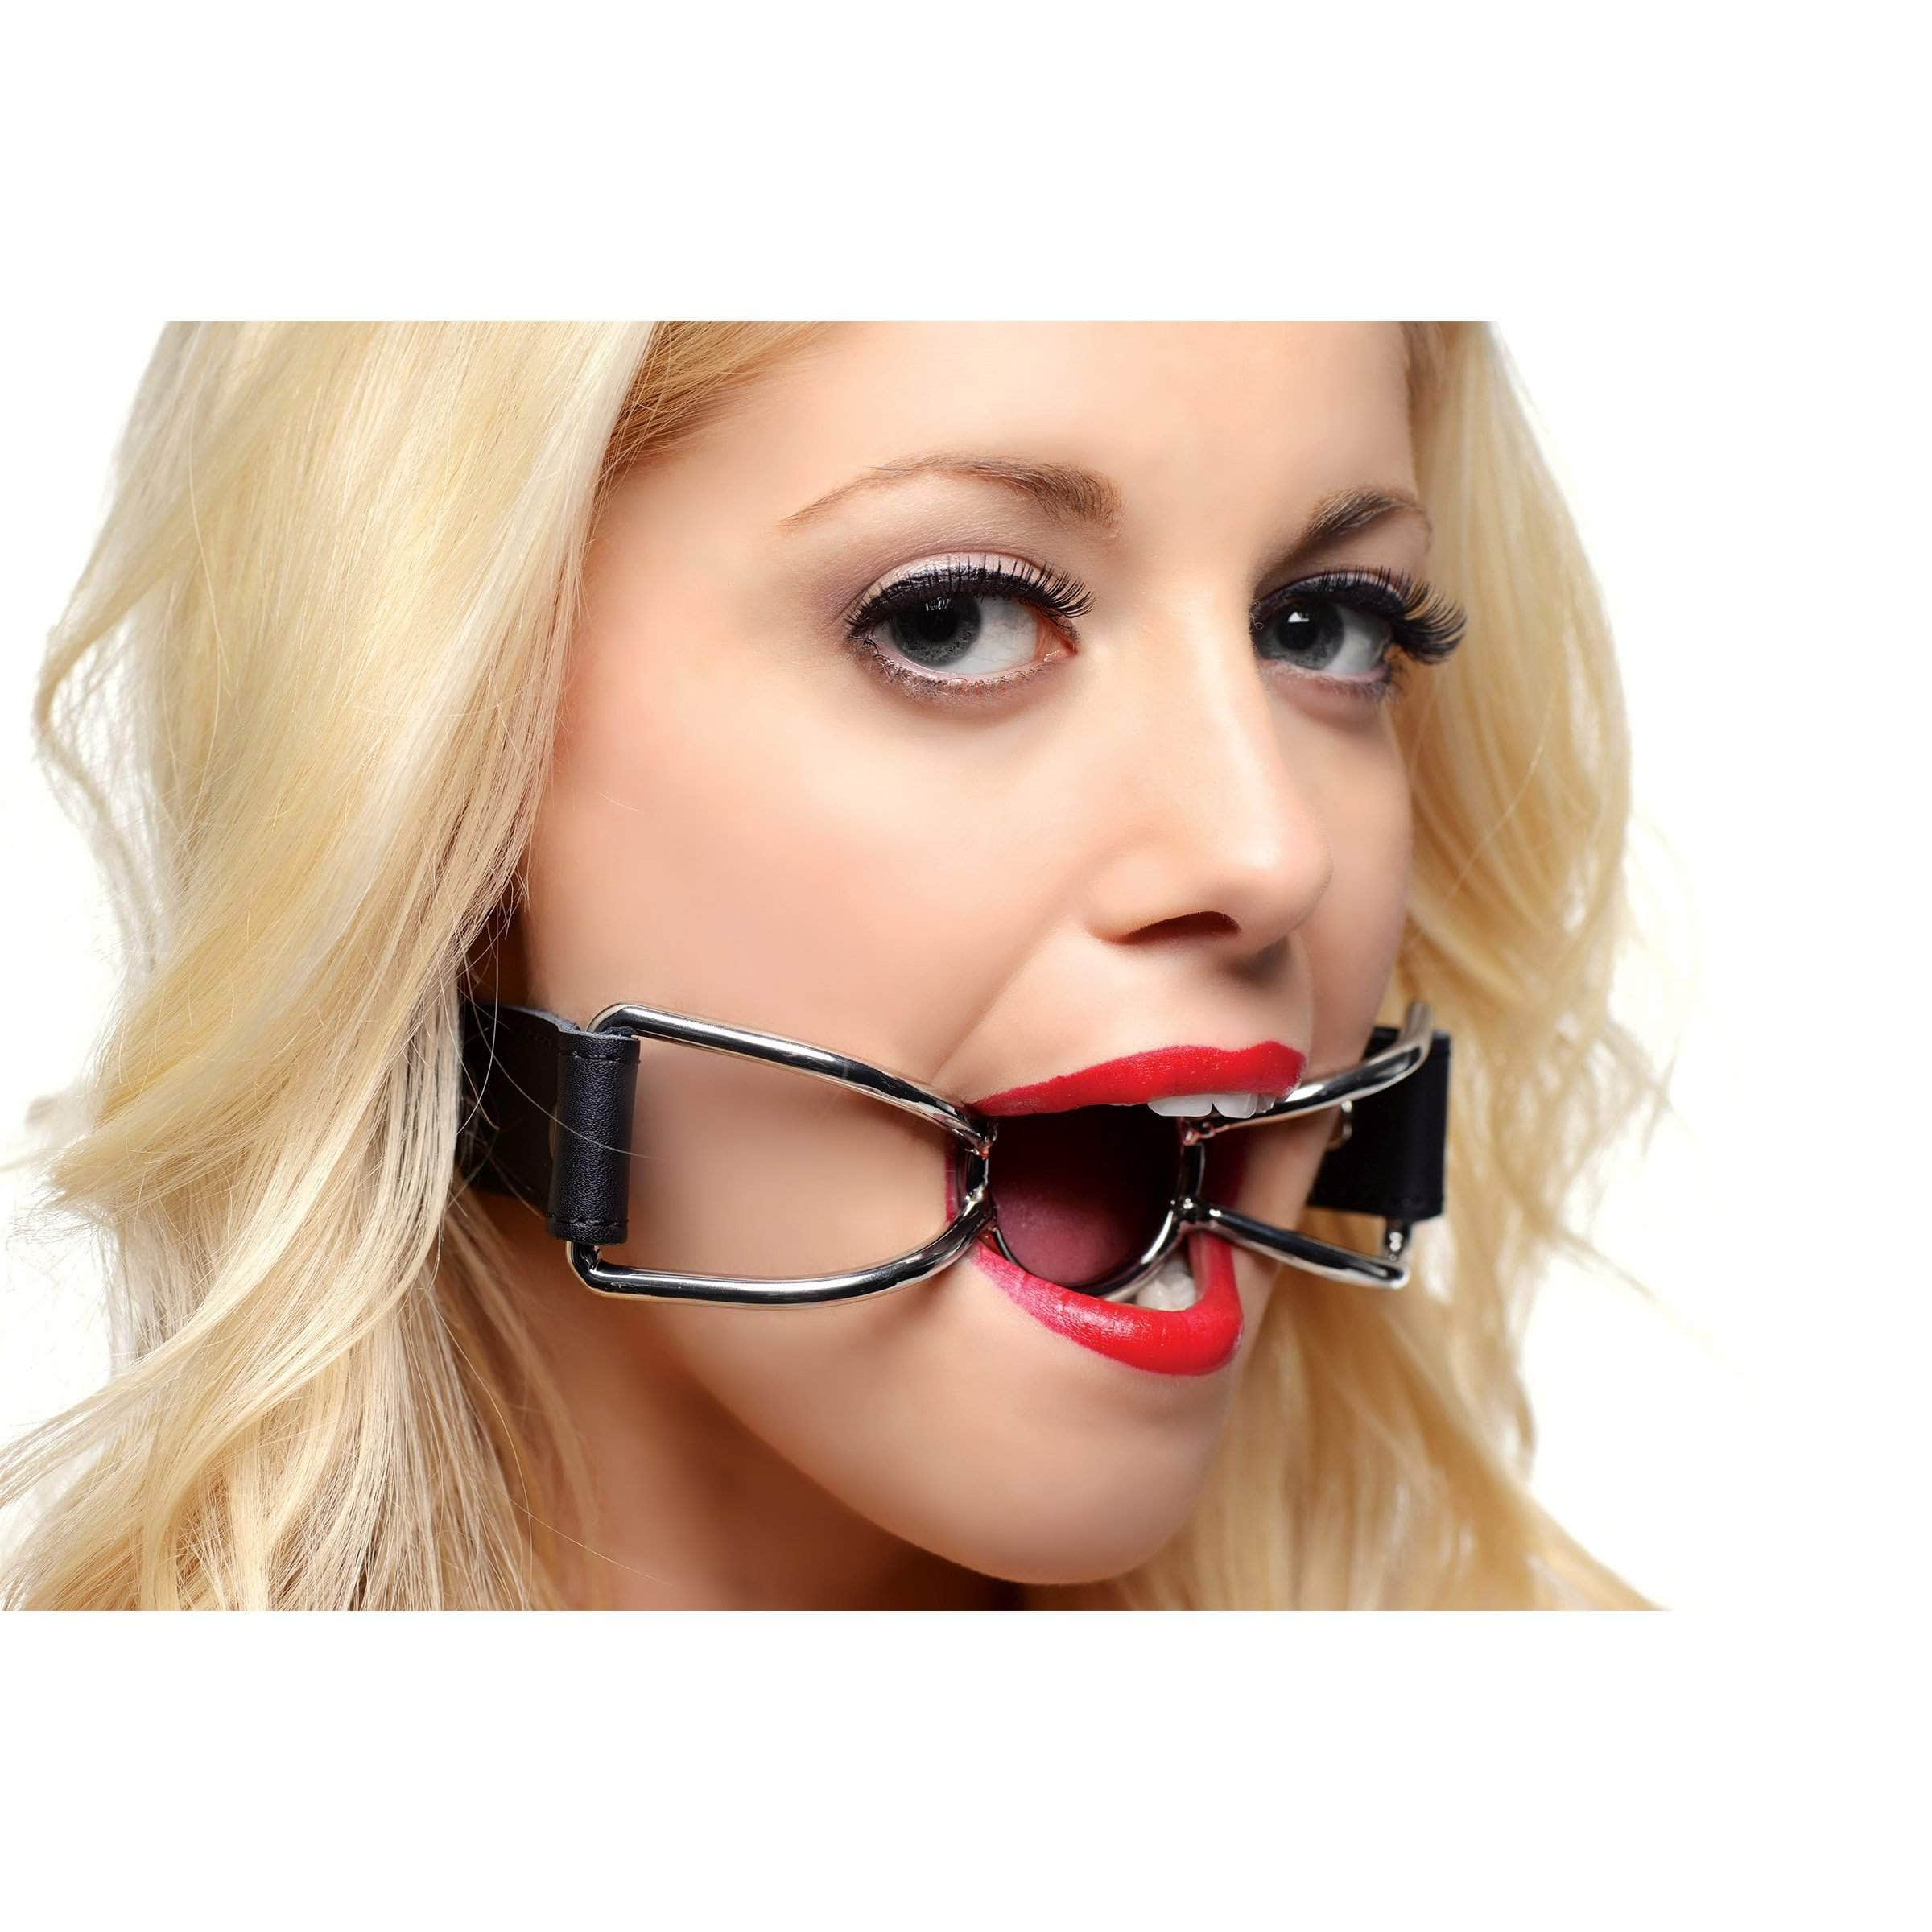 Spider Open Mouth Gag